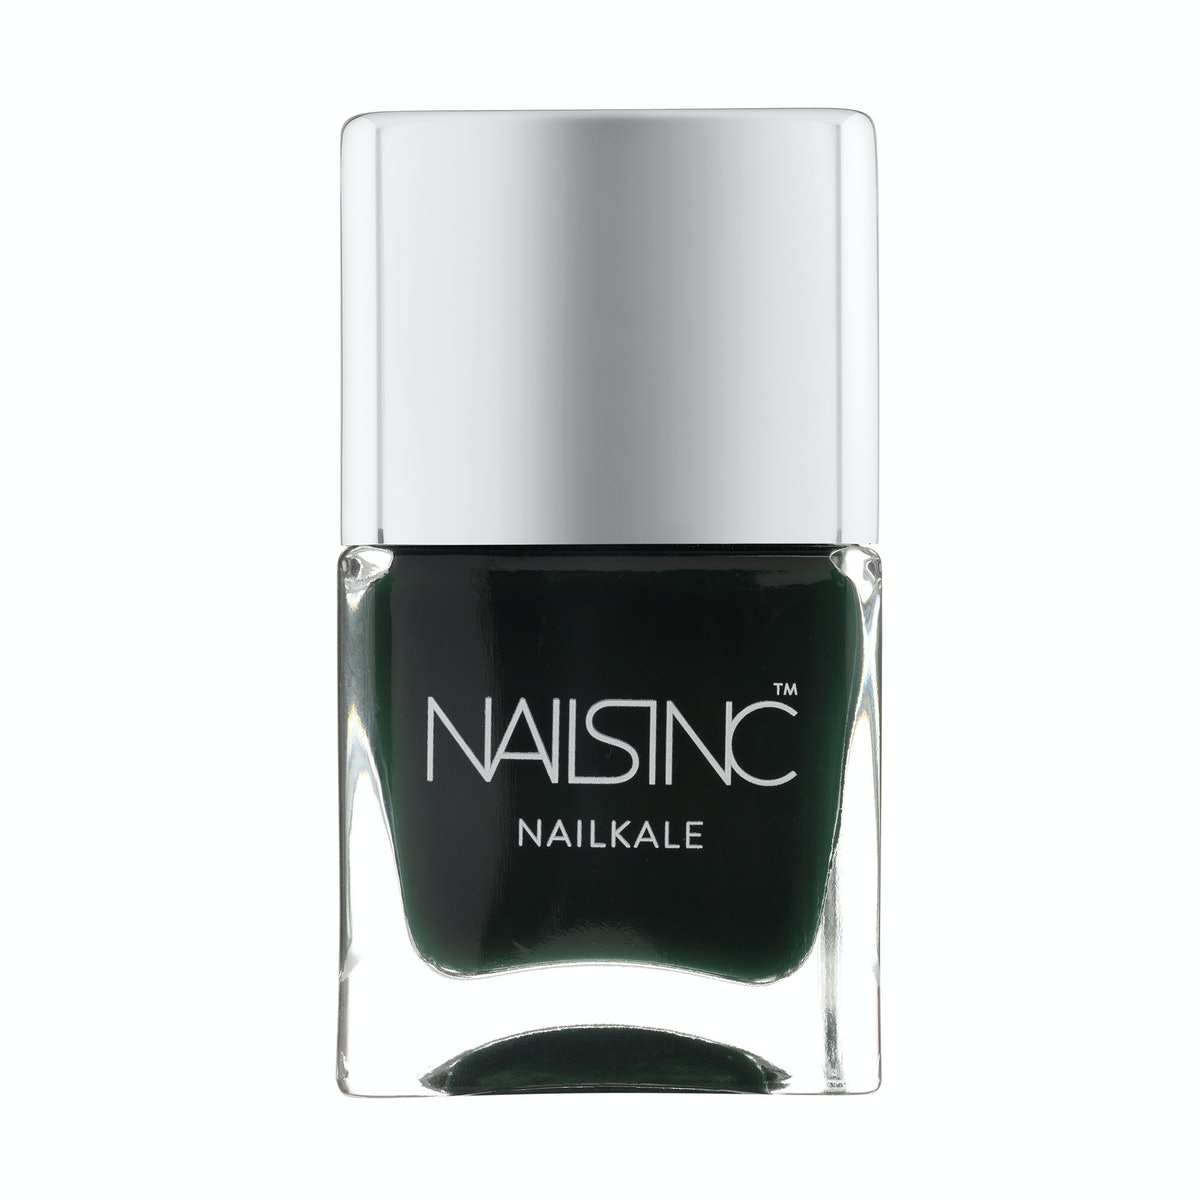 Nails Inc. NailKale in Bruton Mews